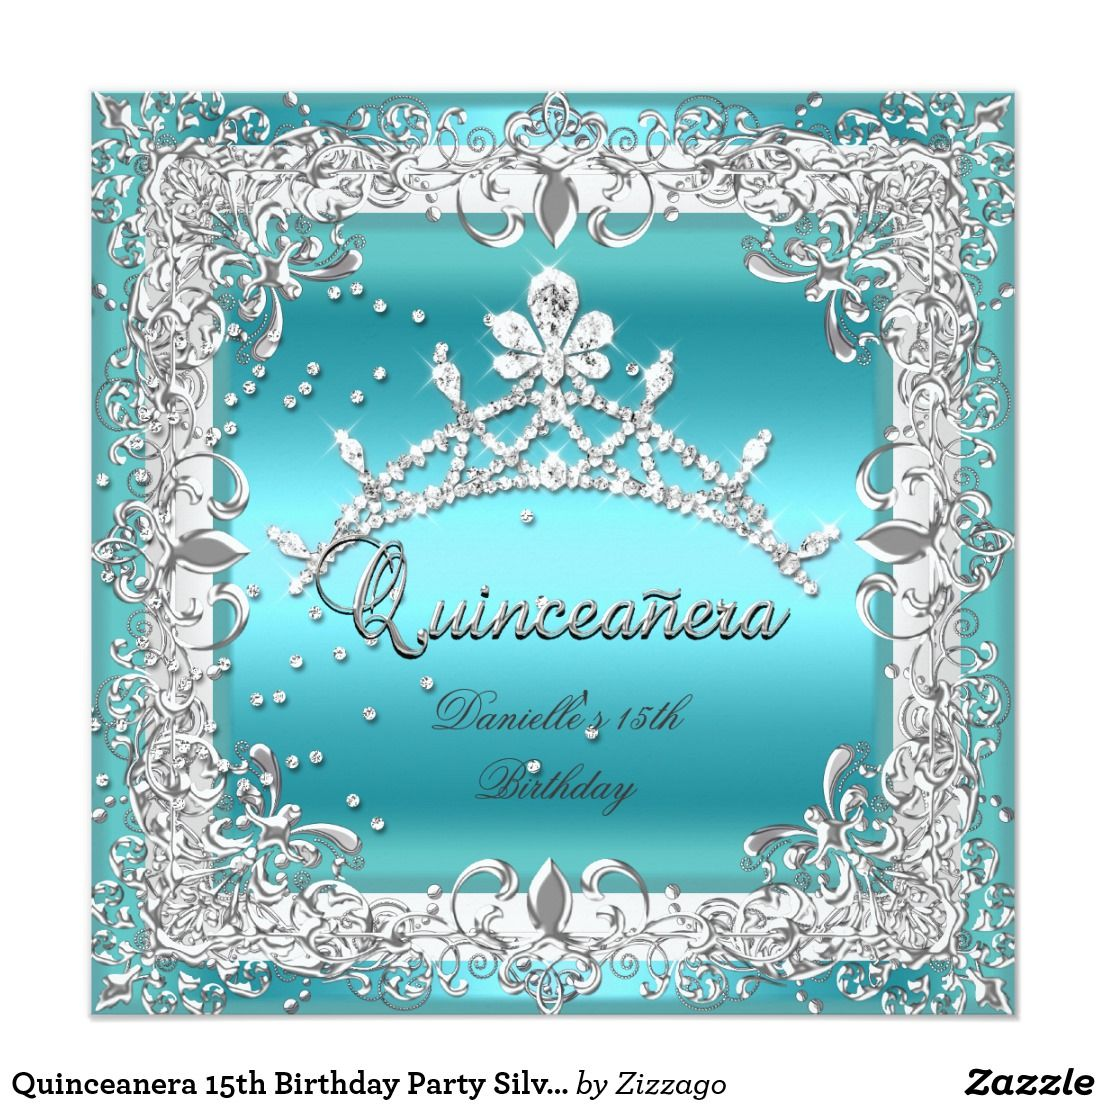 Quinceanera 15th Birthday Party Silver Teal Card   15th birthday ...